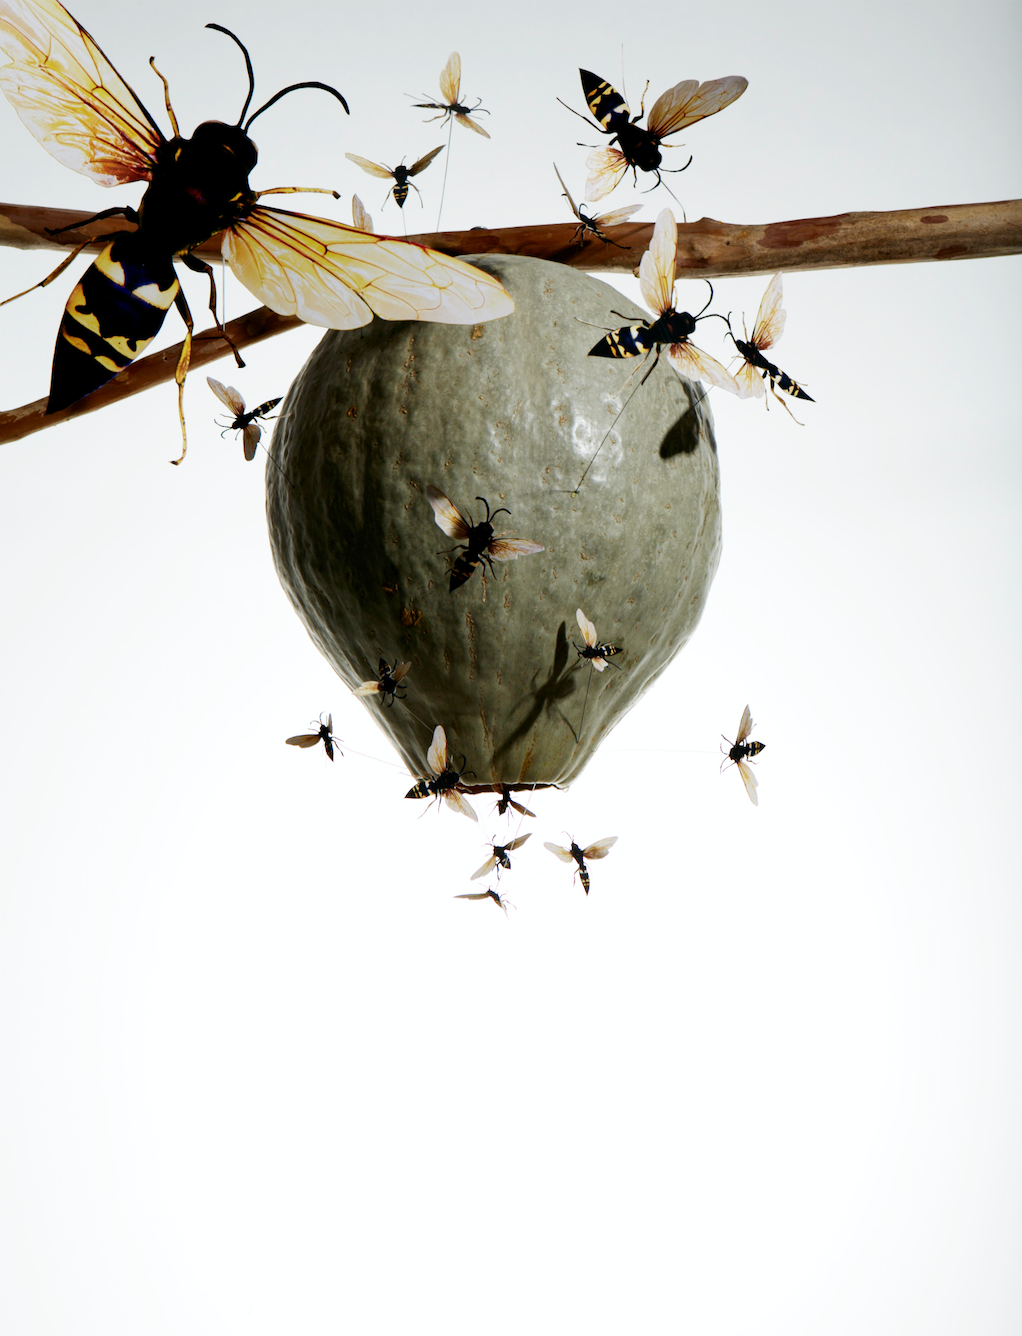 decorated gourd as hornets nest